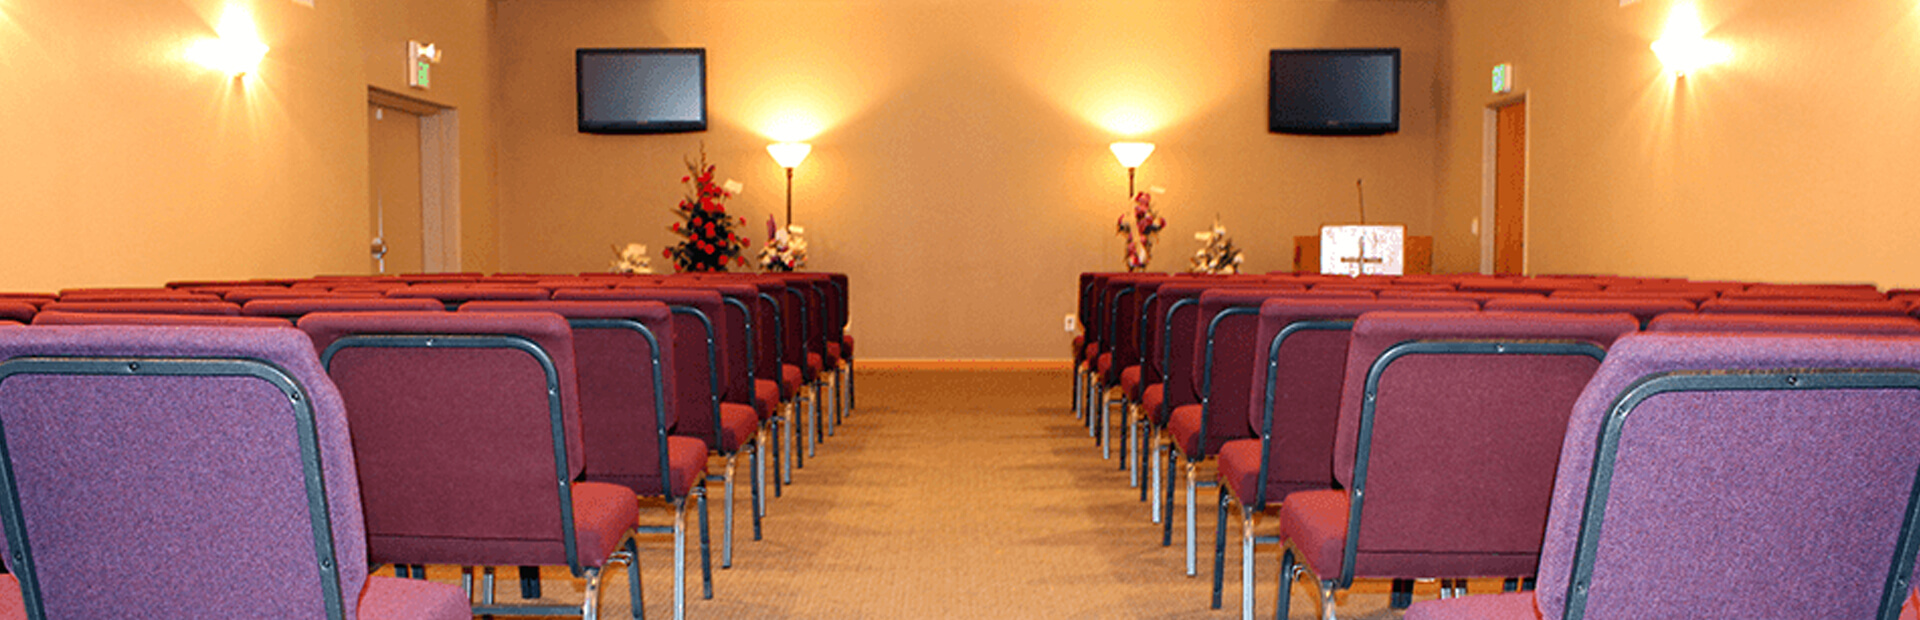 Viegut Funeral Home in Loveland, CO